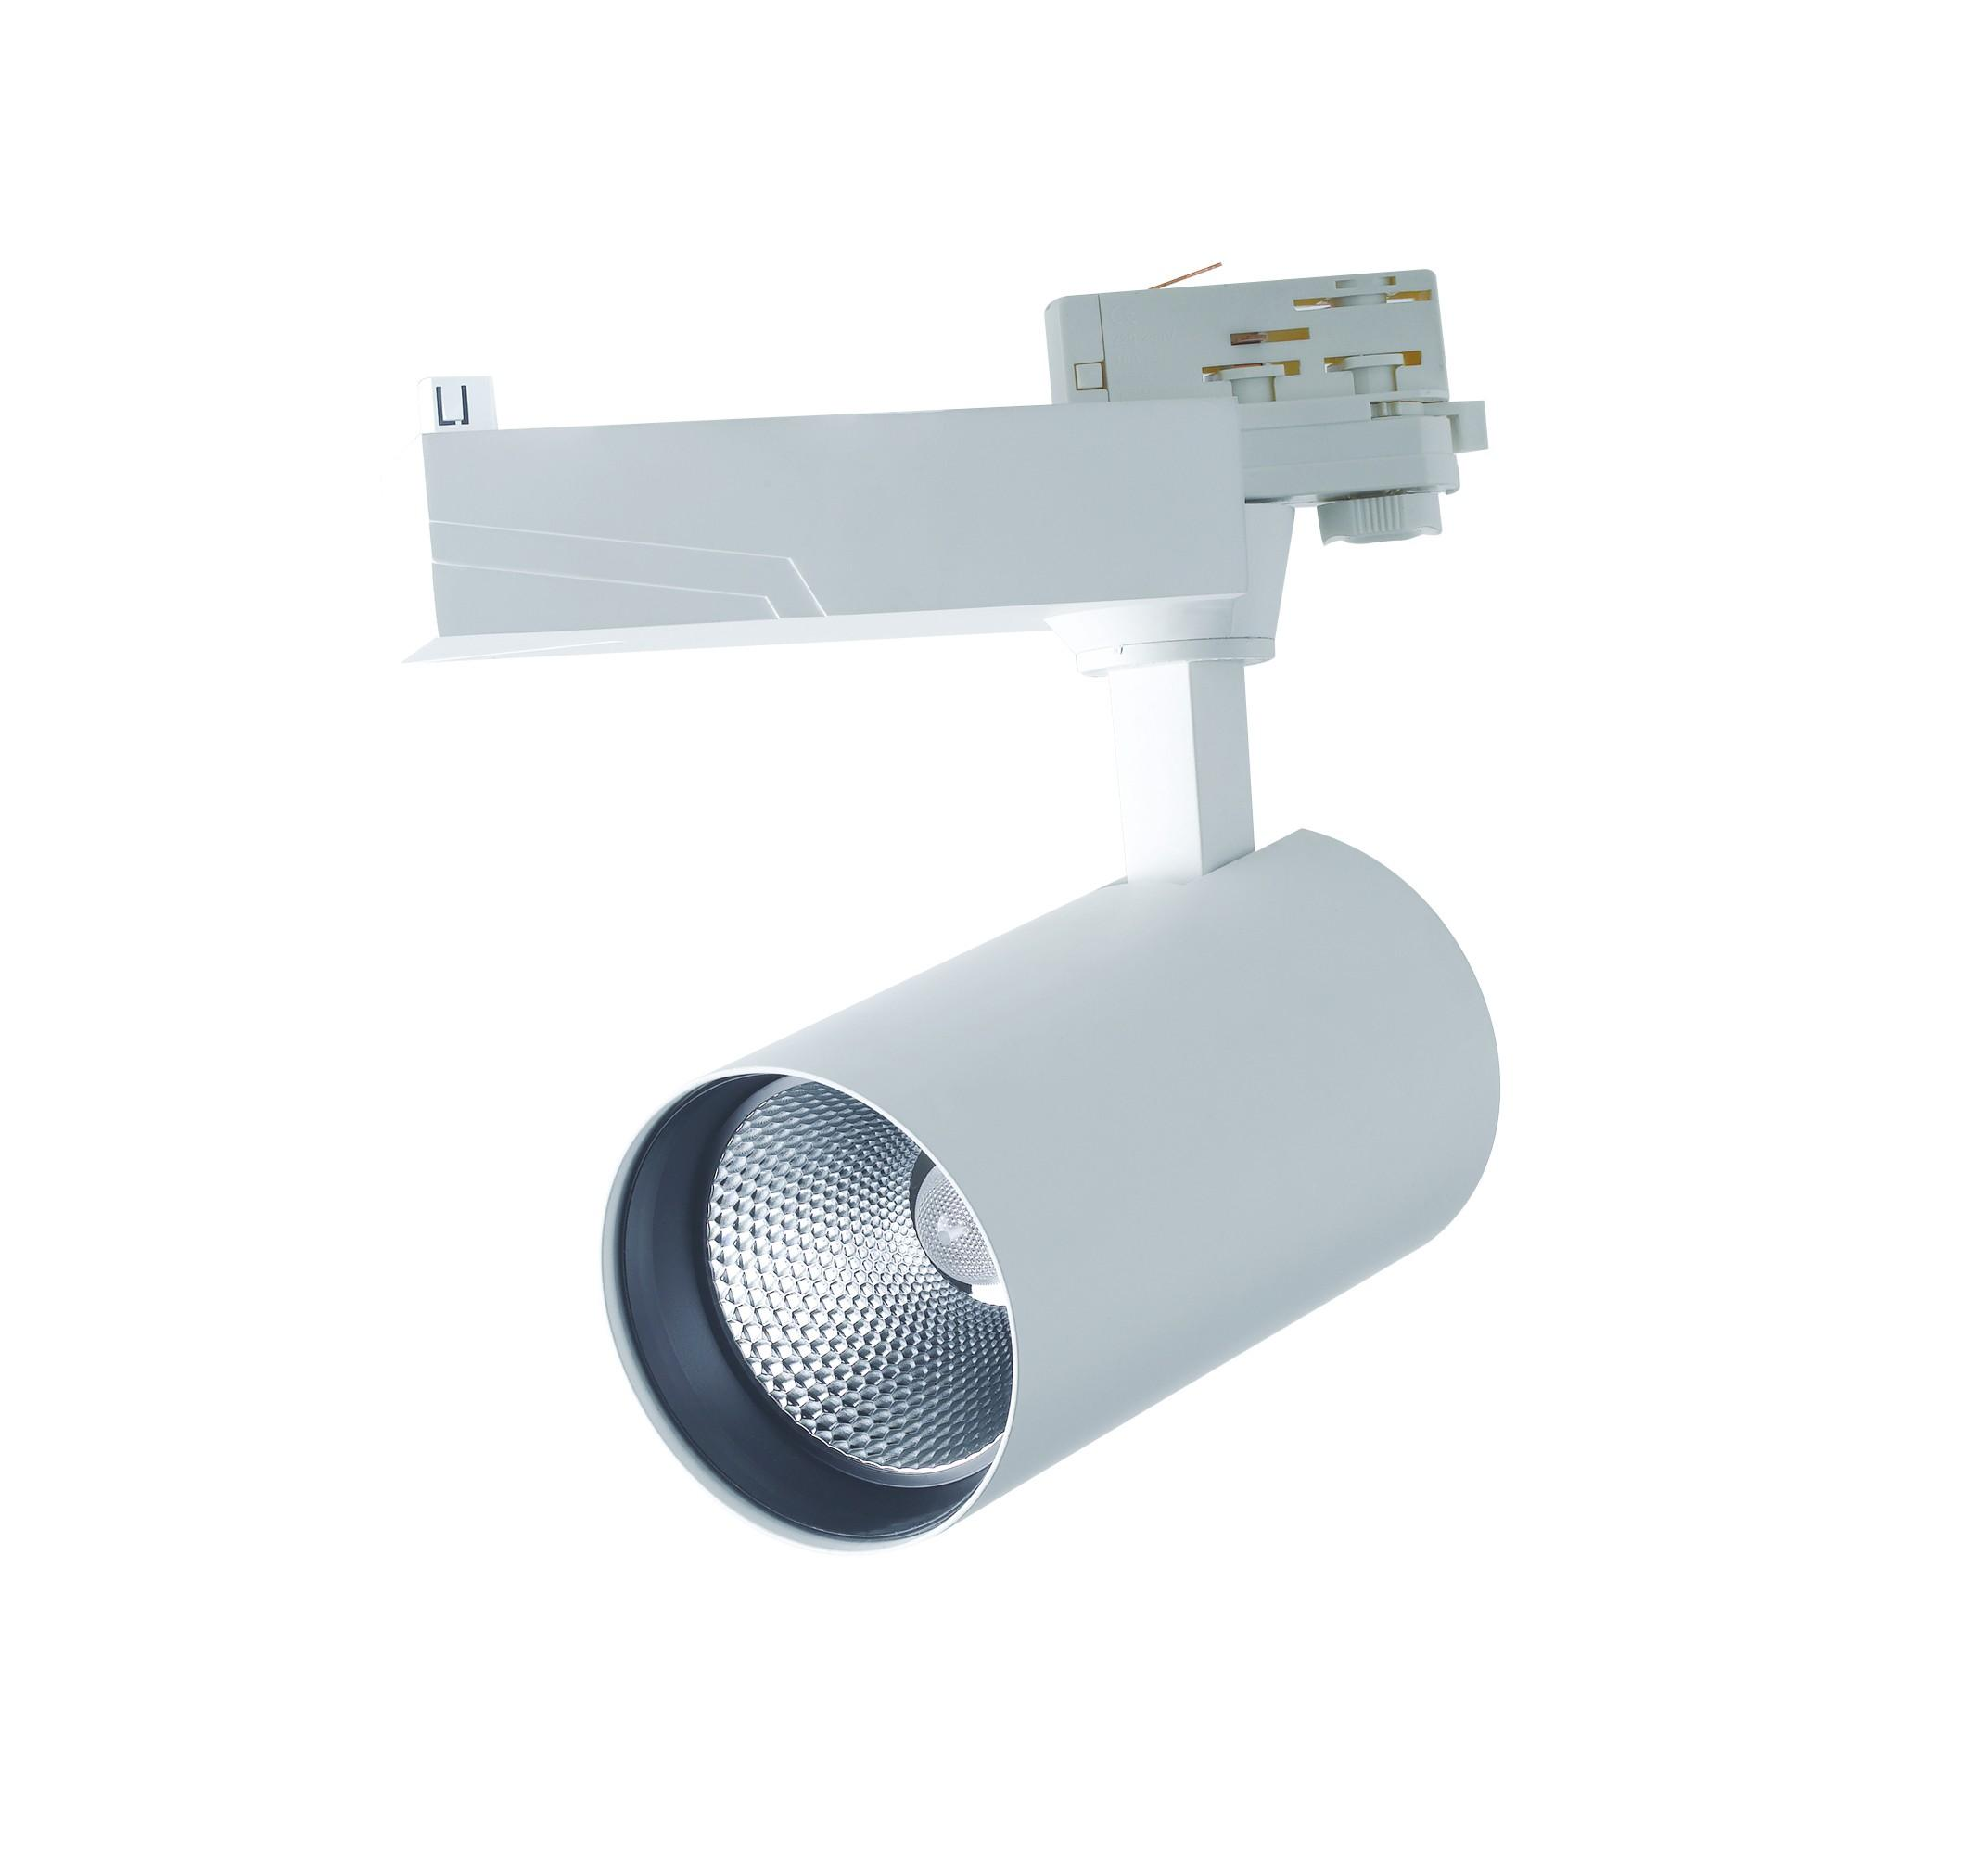 Faretto Binario Bianco Alluminio Pressofuso Led 40 watt Luce Naturale Intec LED-EAGLE-W-40WM